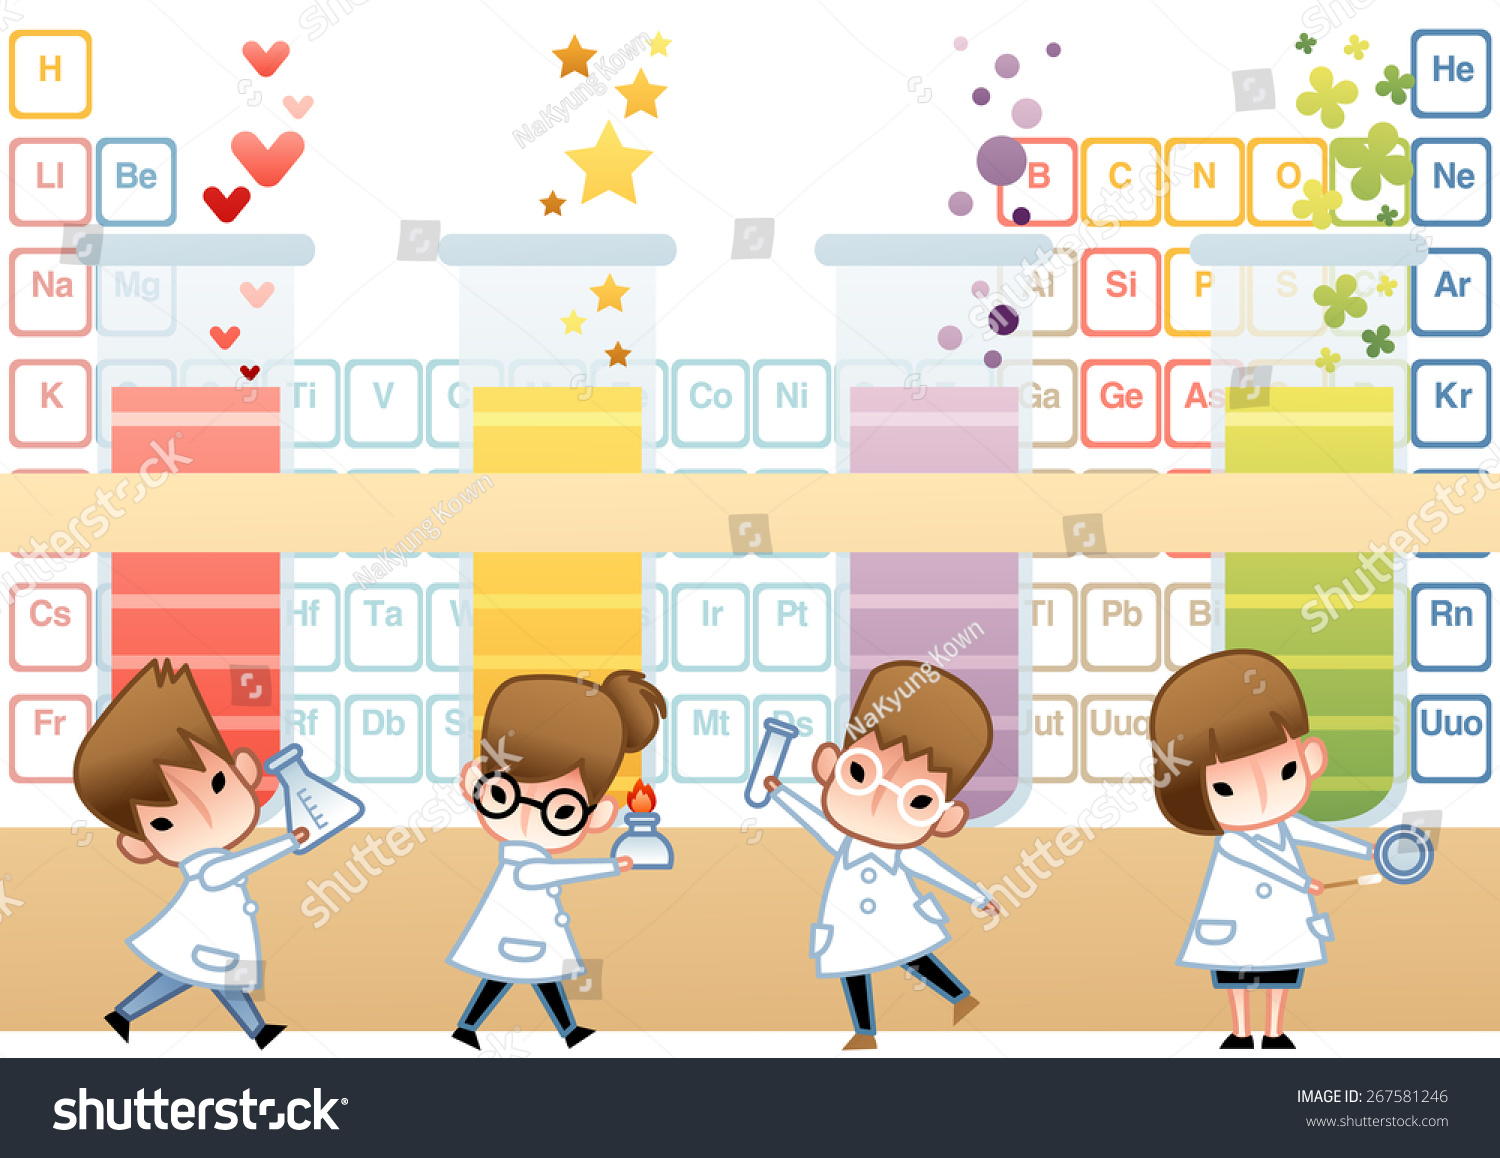 cute science wallpapers girls space - photo #46